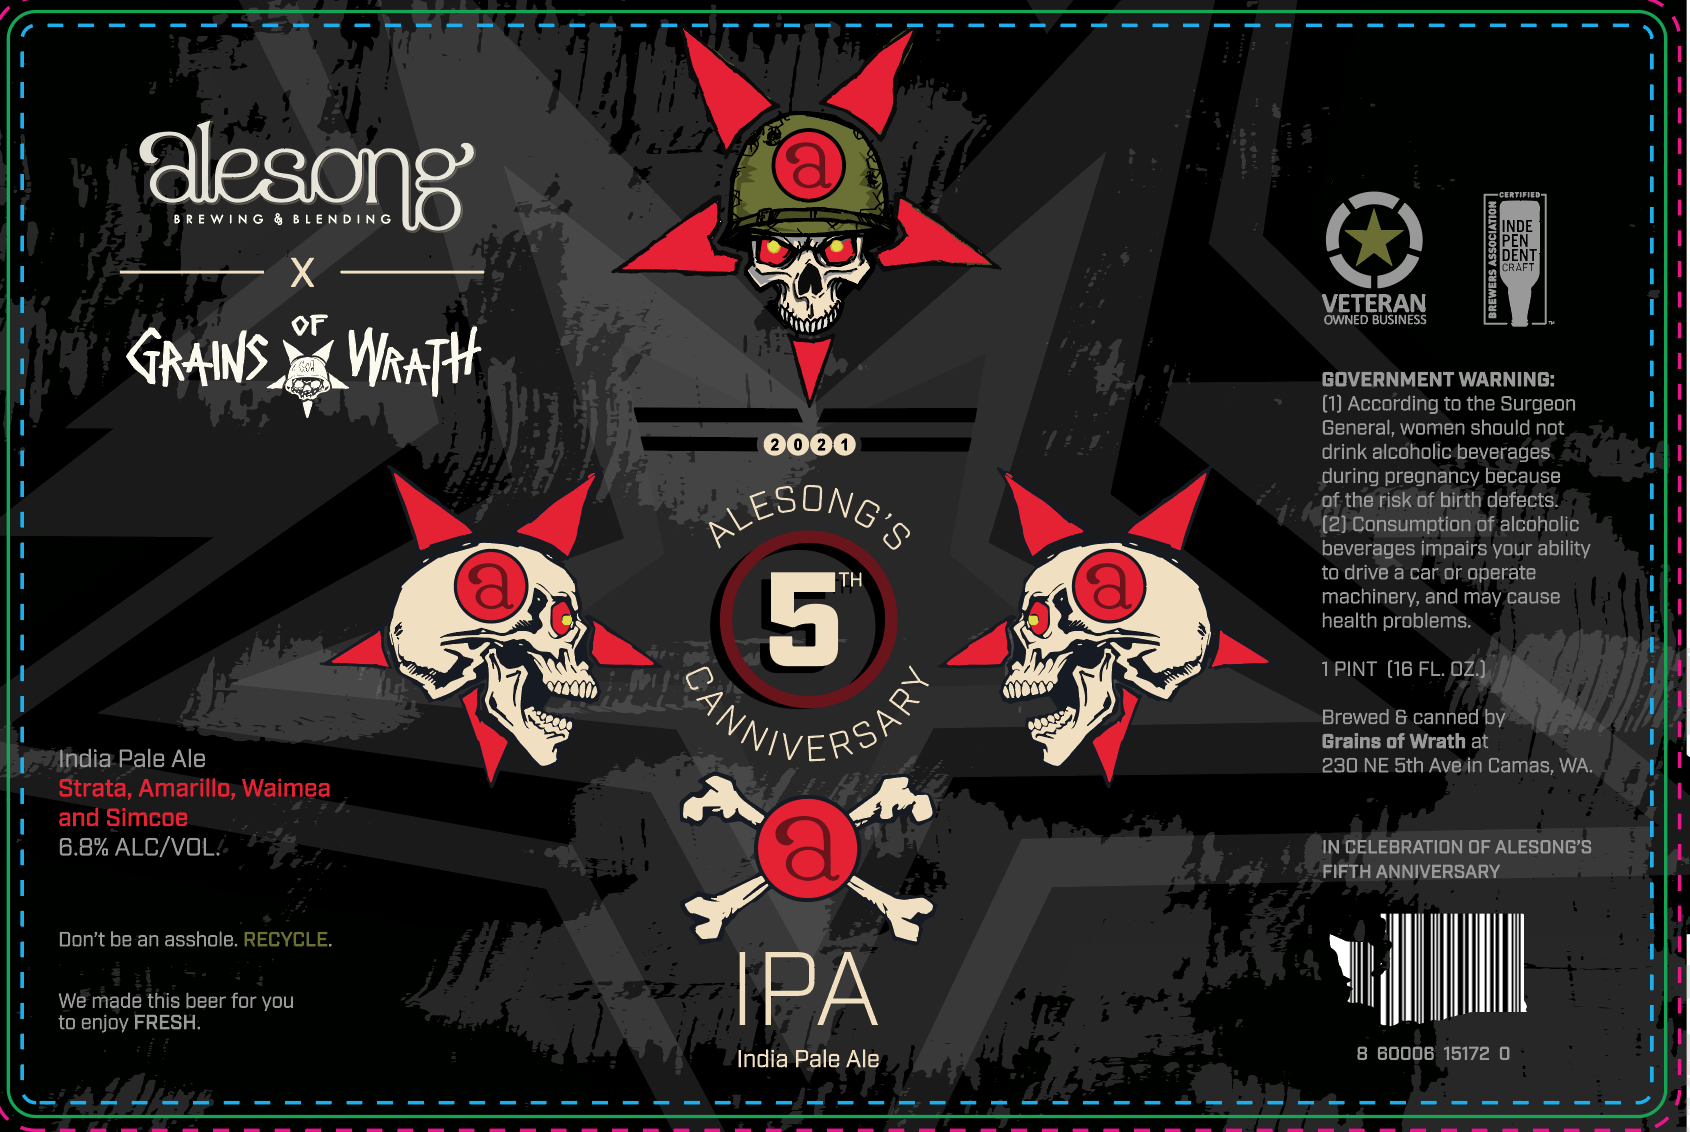 Alesong Brewing & Blending 5th Anniversary IPA brewed at Grains of Wrath